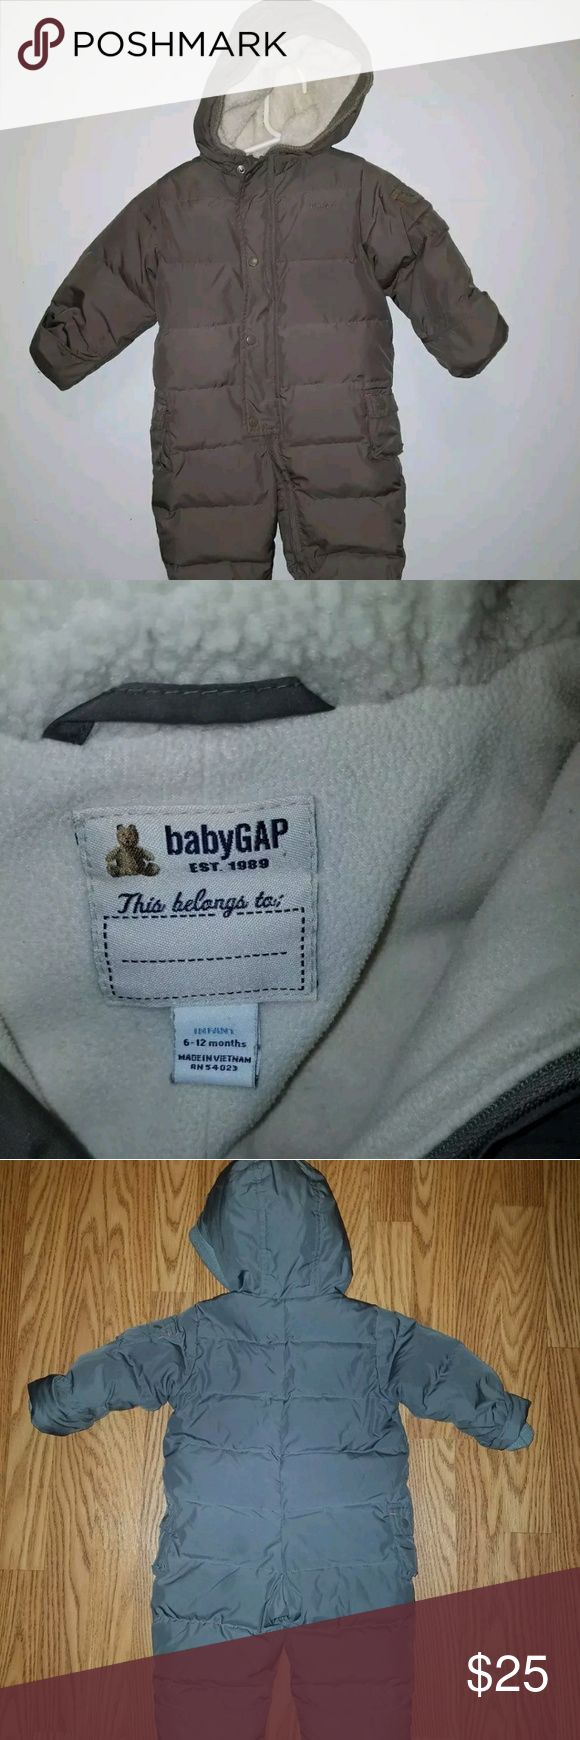 Baby gap one piece 6-12 months snow coat Really nice warm cozy snow coat gently owned 6-12 months brownish color can fleece lining GAP Jackets & Coats